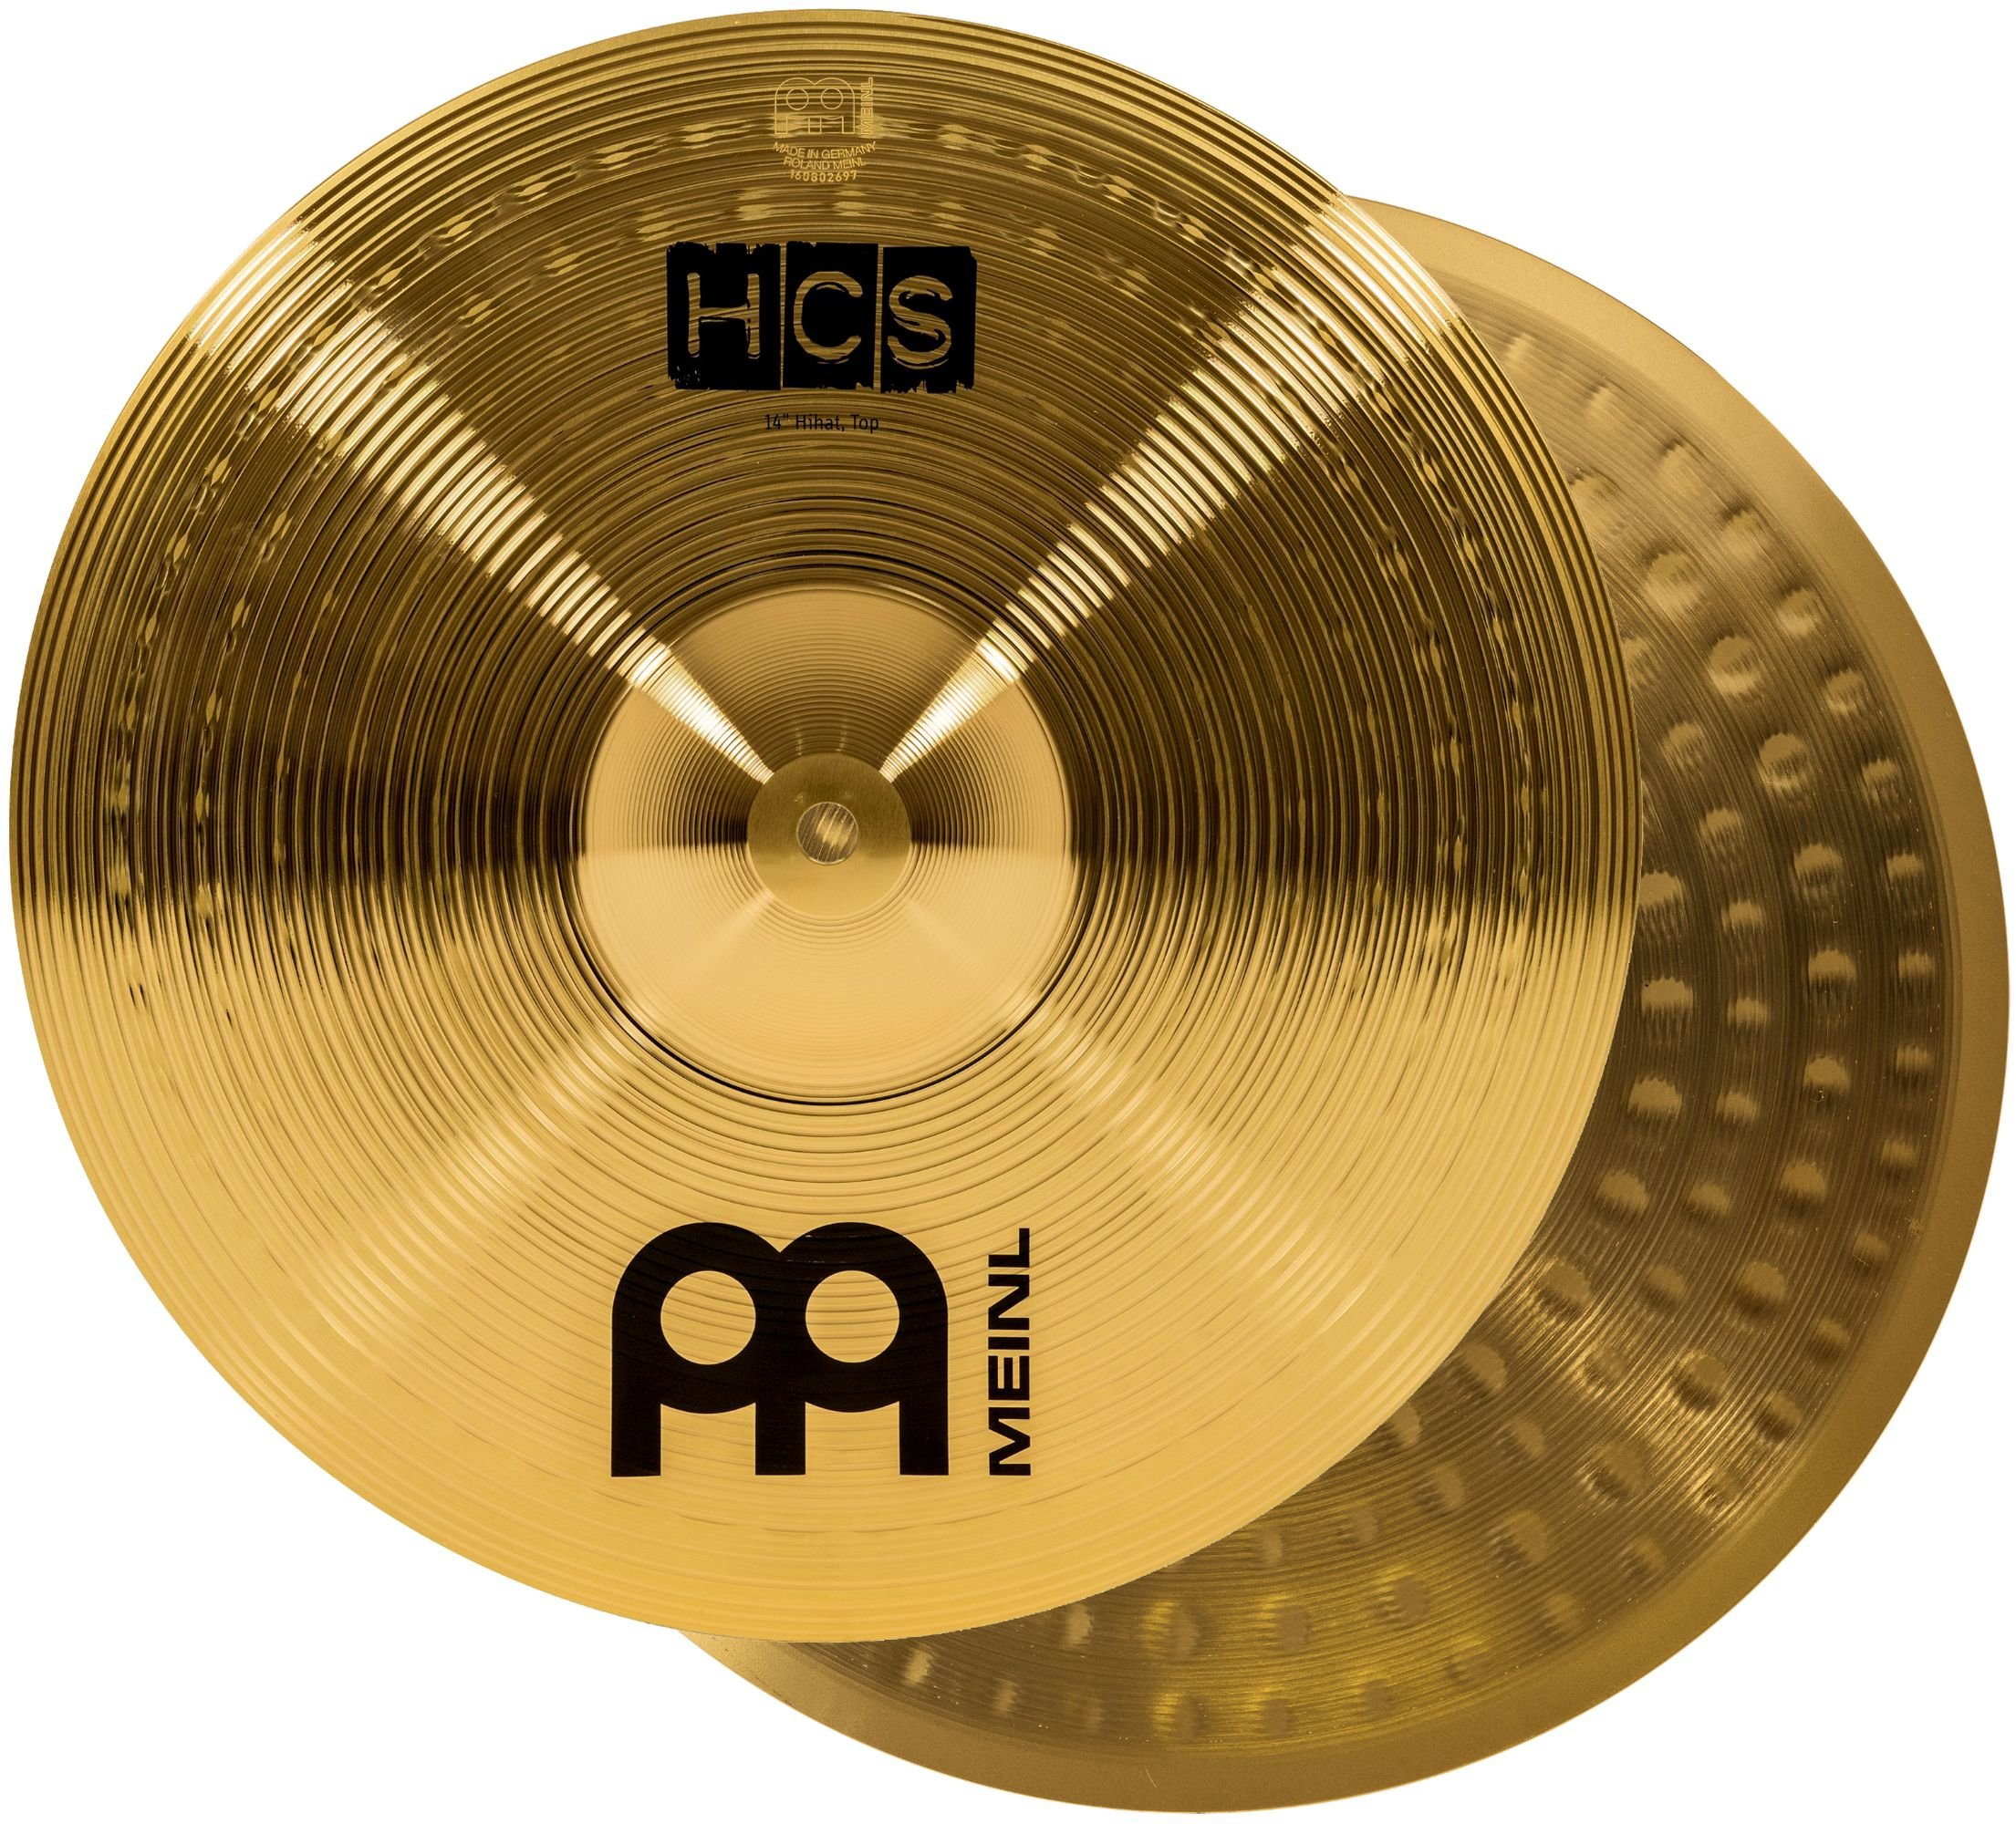 Meinl 14'' Hihat (Hi Hat) Cymbal Pair - HCS Traditional Finish Brass for Drum Set, Made In Germany, 2-YEAR WARRANTY (HCS14H)